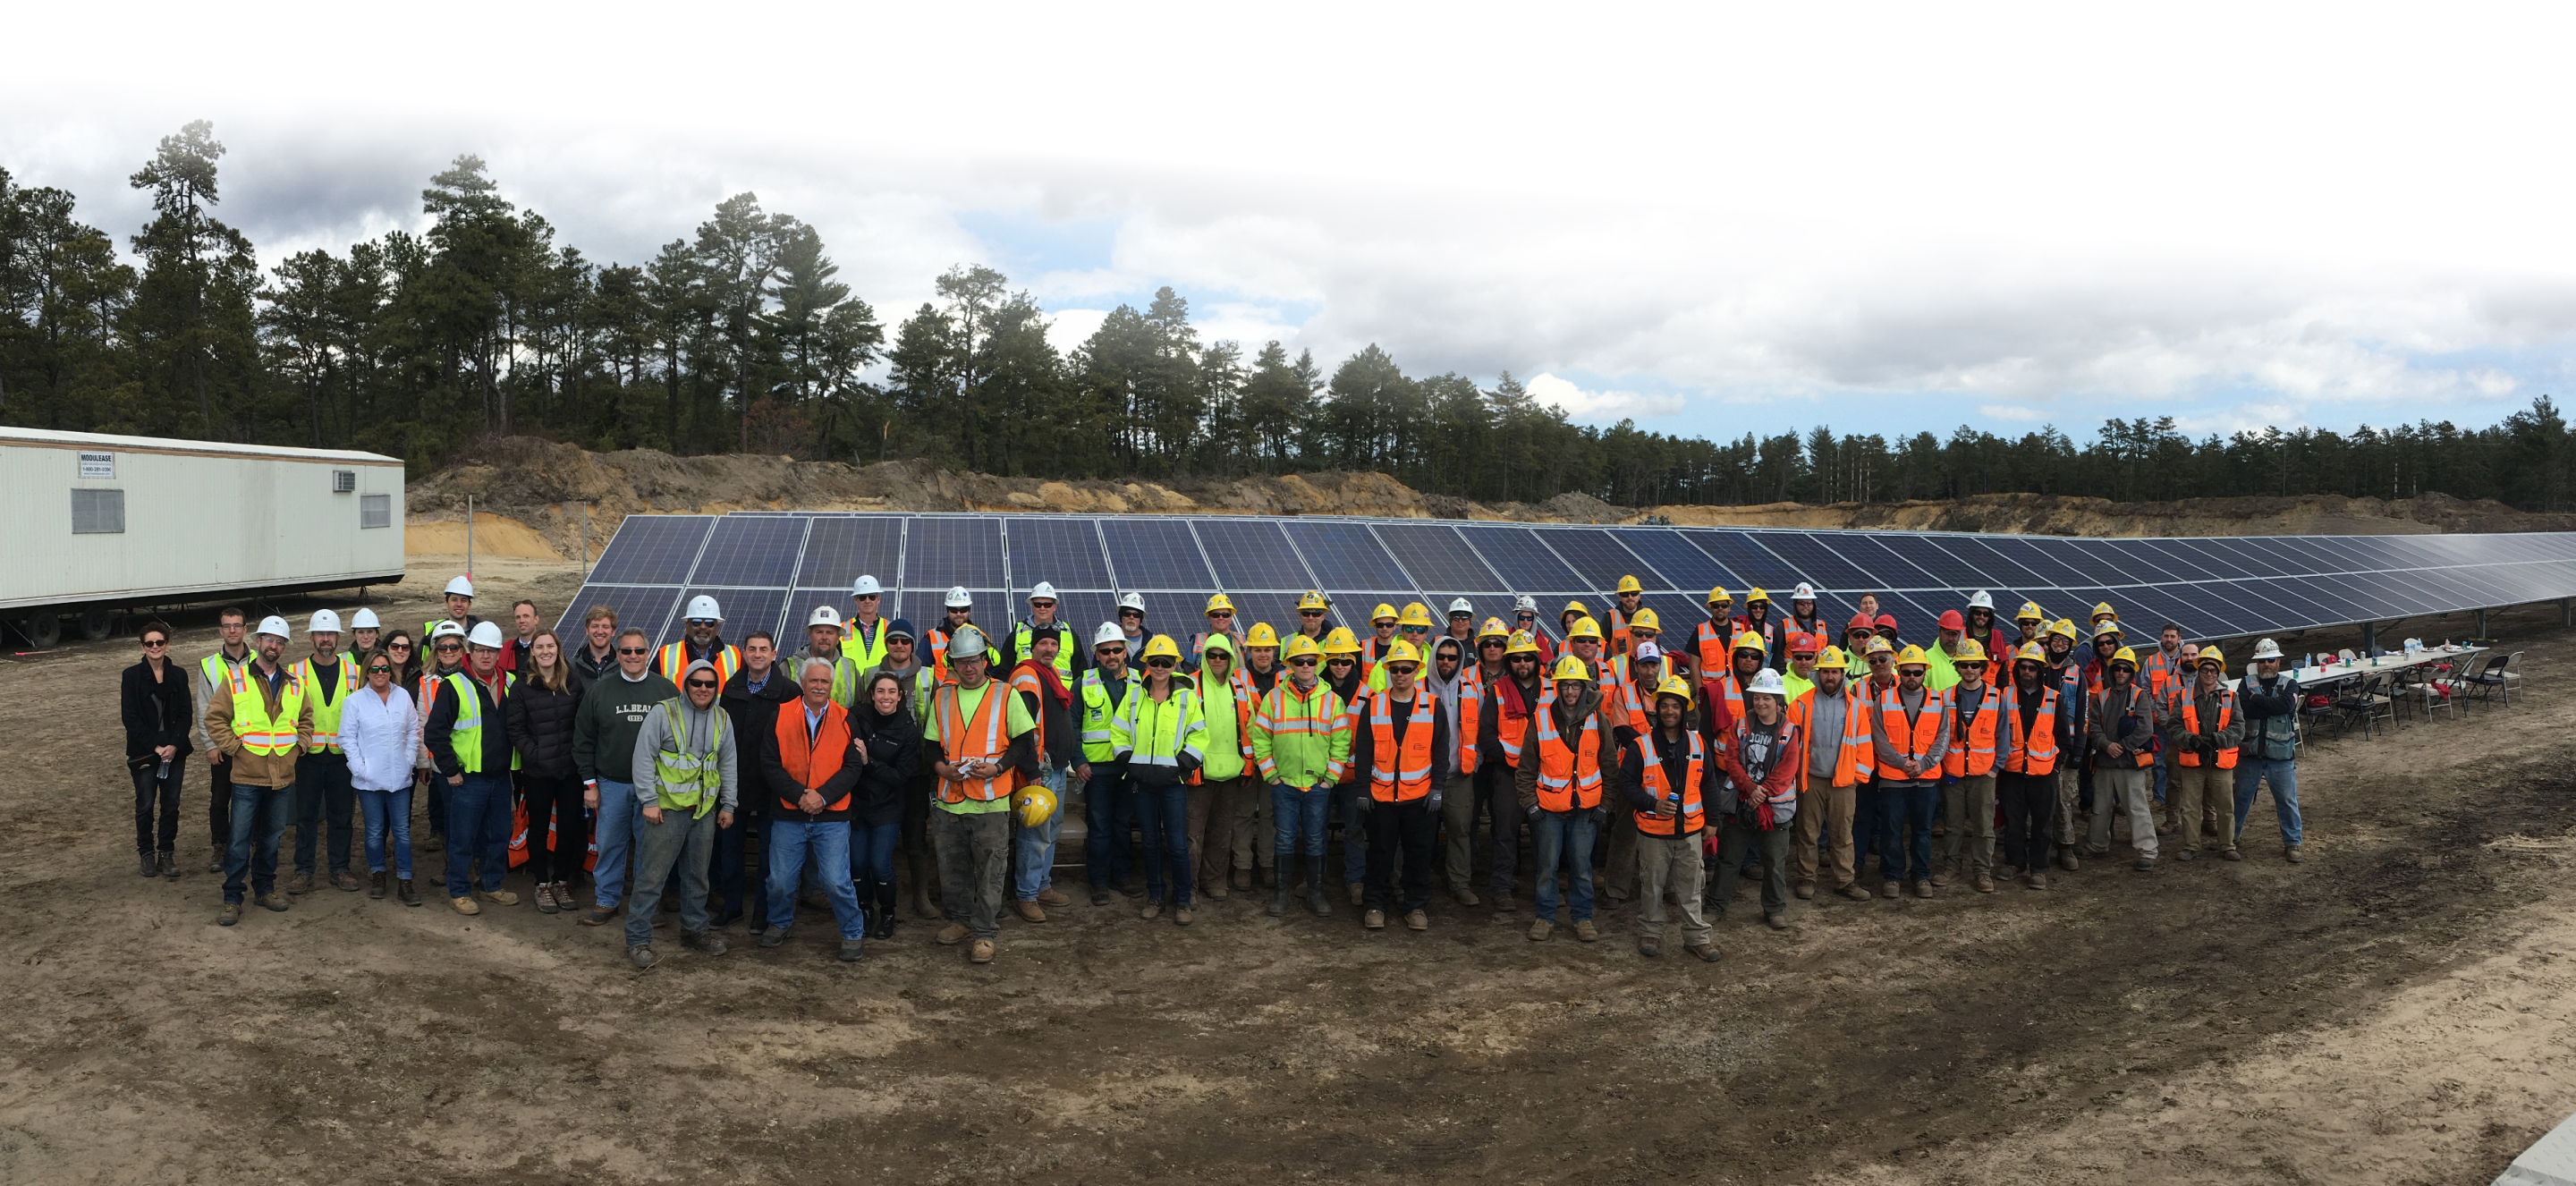 Construction team in front of solar panels.